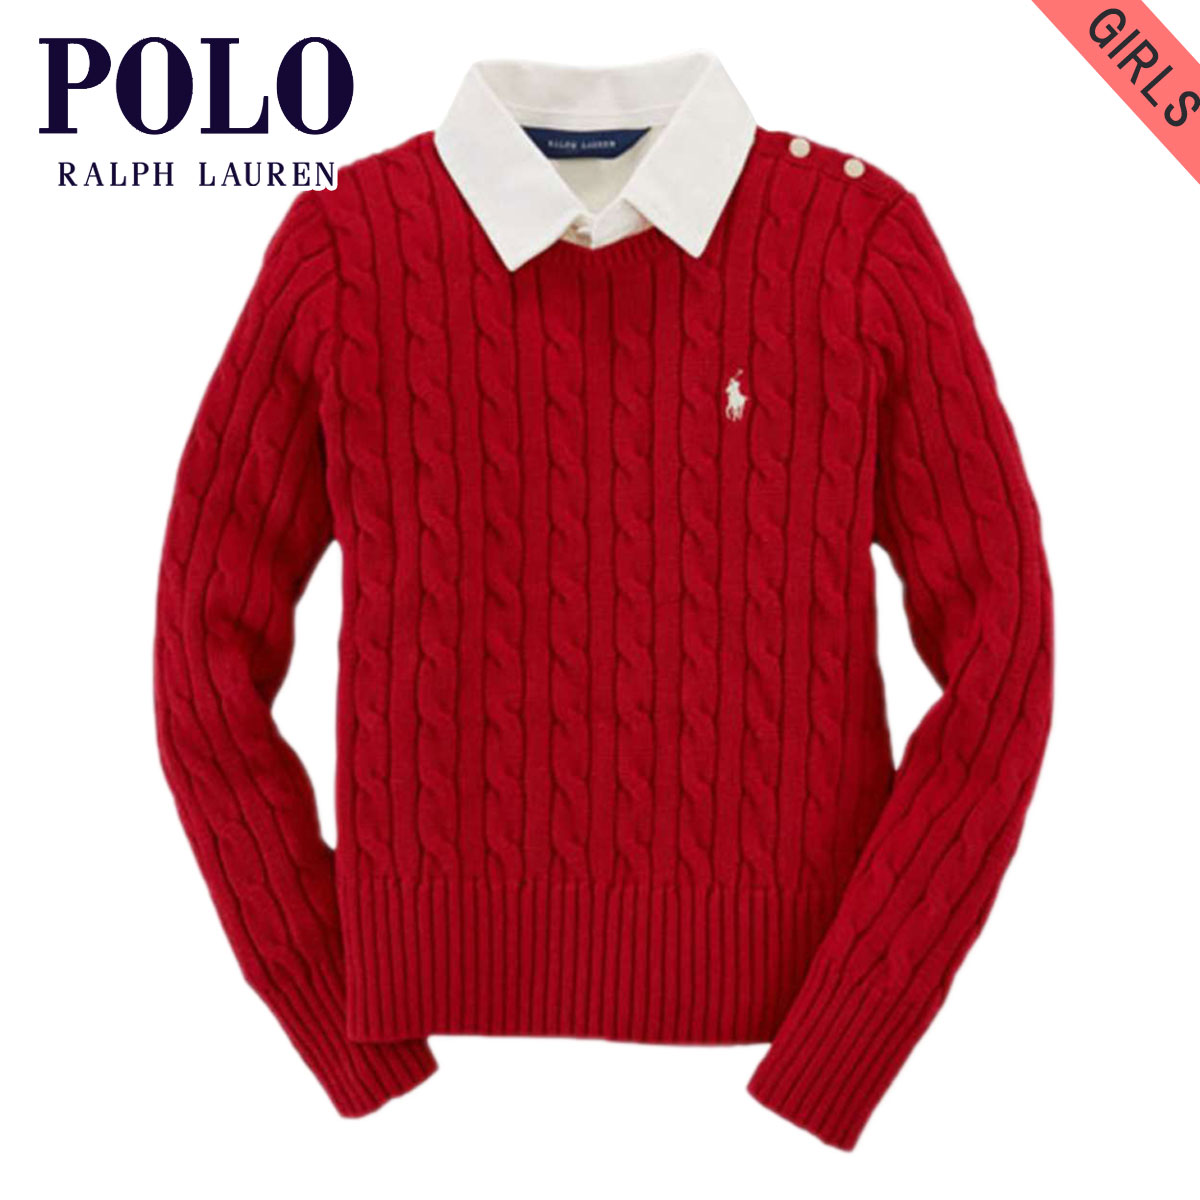 0ba5c80ef Poloralflorenkids POLO RALPH LAUREN CHILDREN genuine kids clothing girls Cardigan  CABLE-KNIT COTTON PULLOVER 48617306